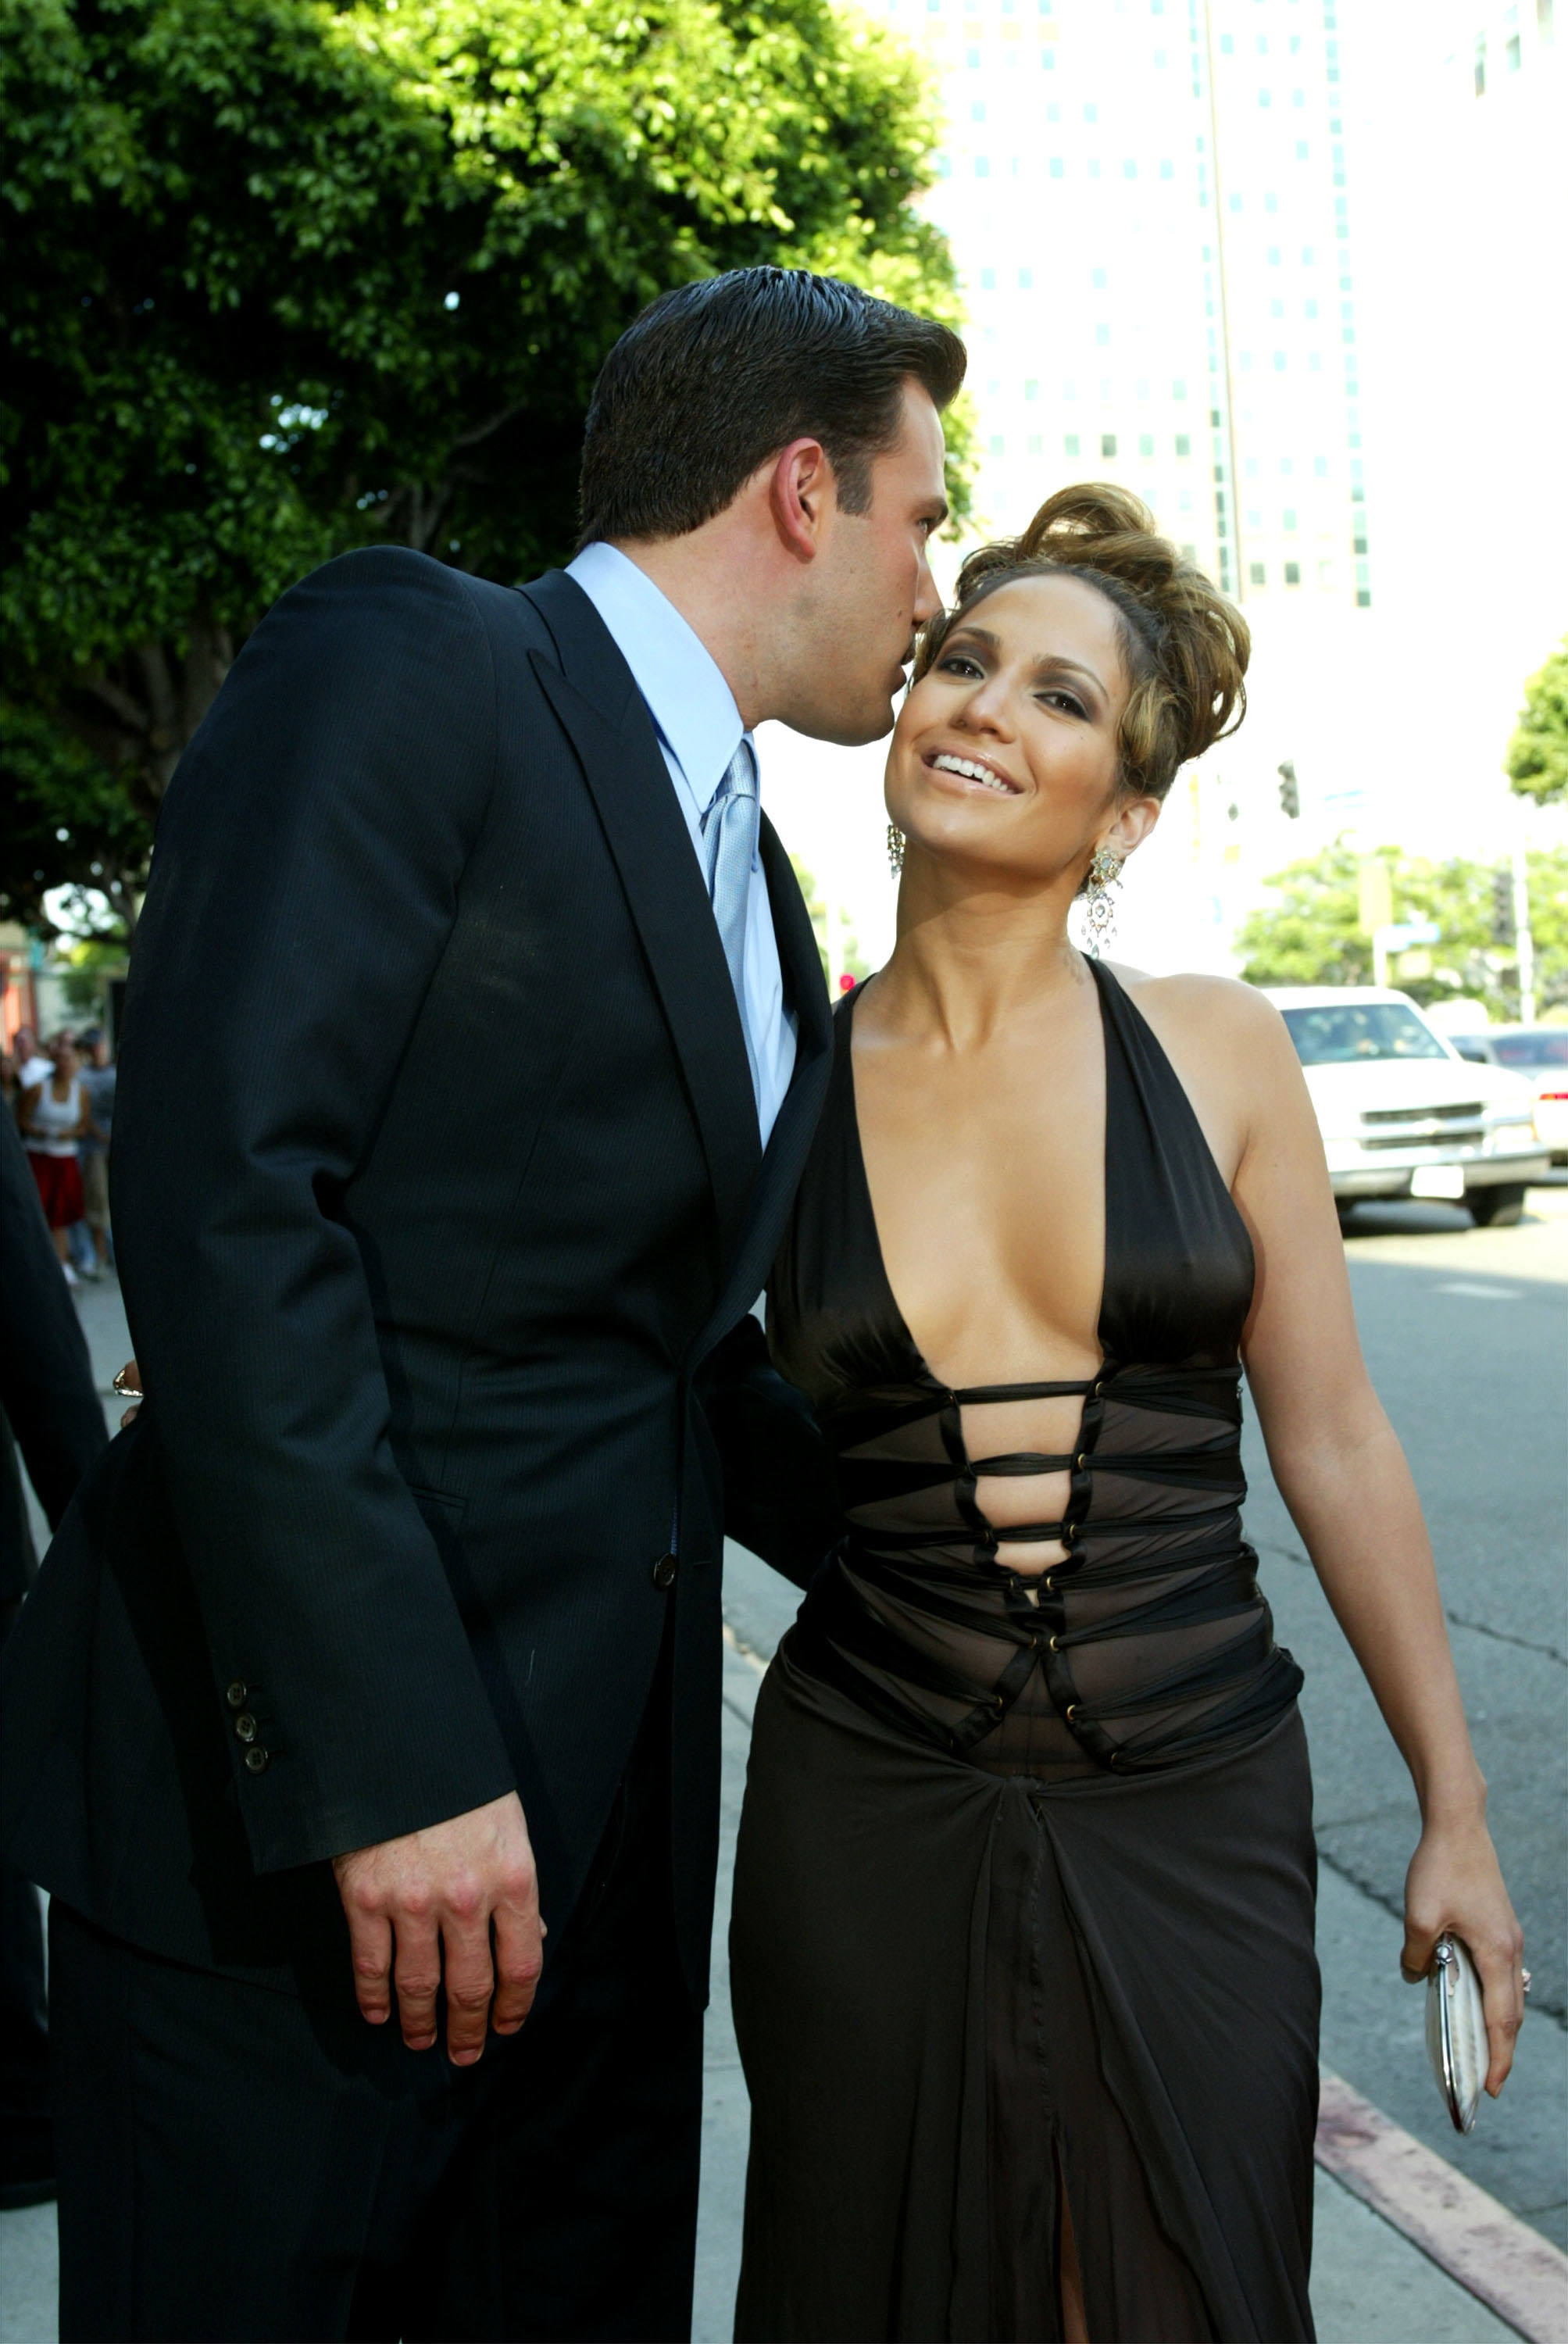 Ben Affleck and Jennifer Lopez at the Gigli premiere